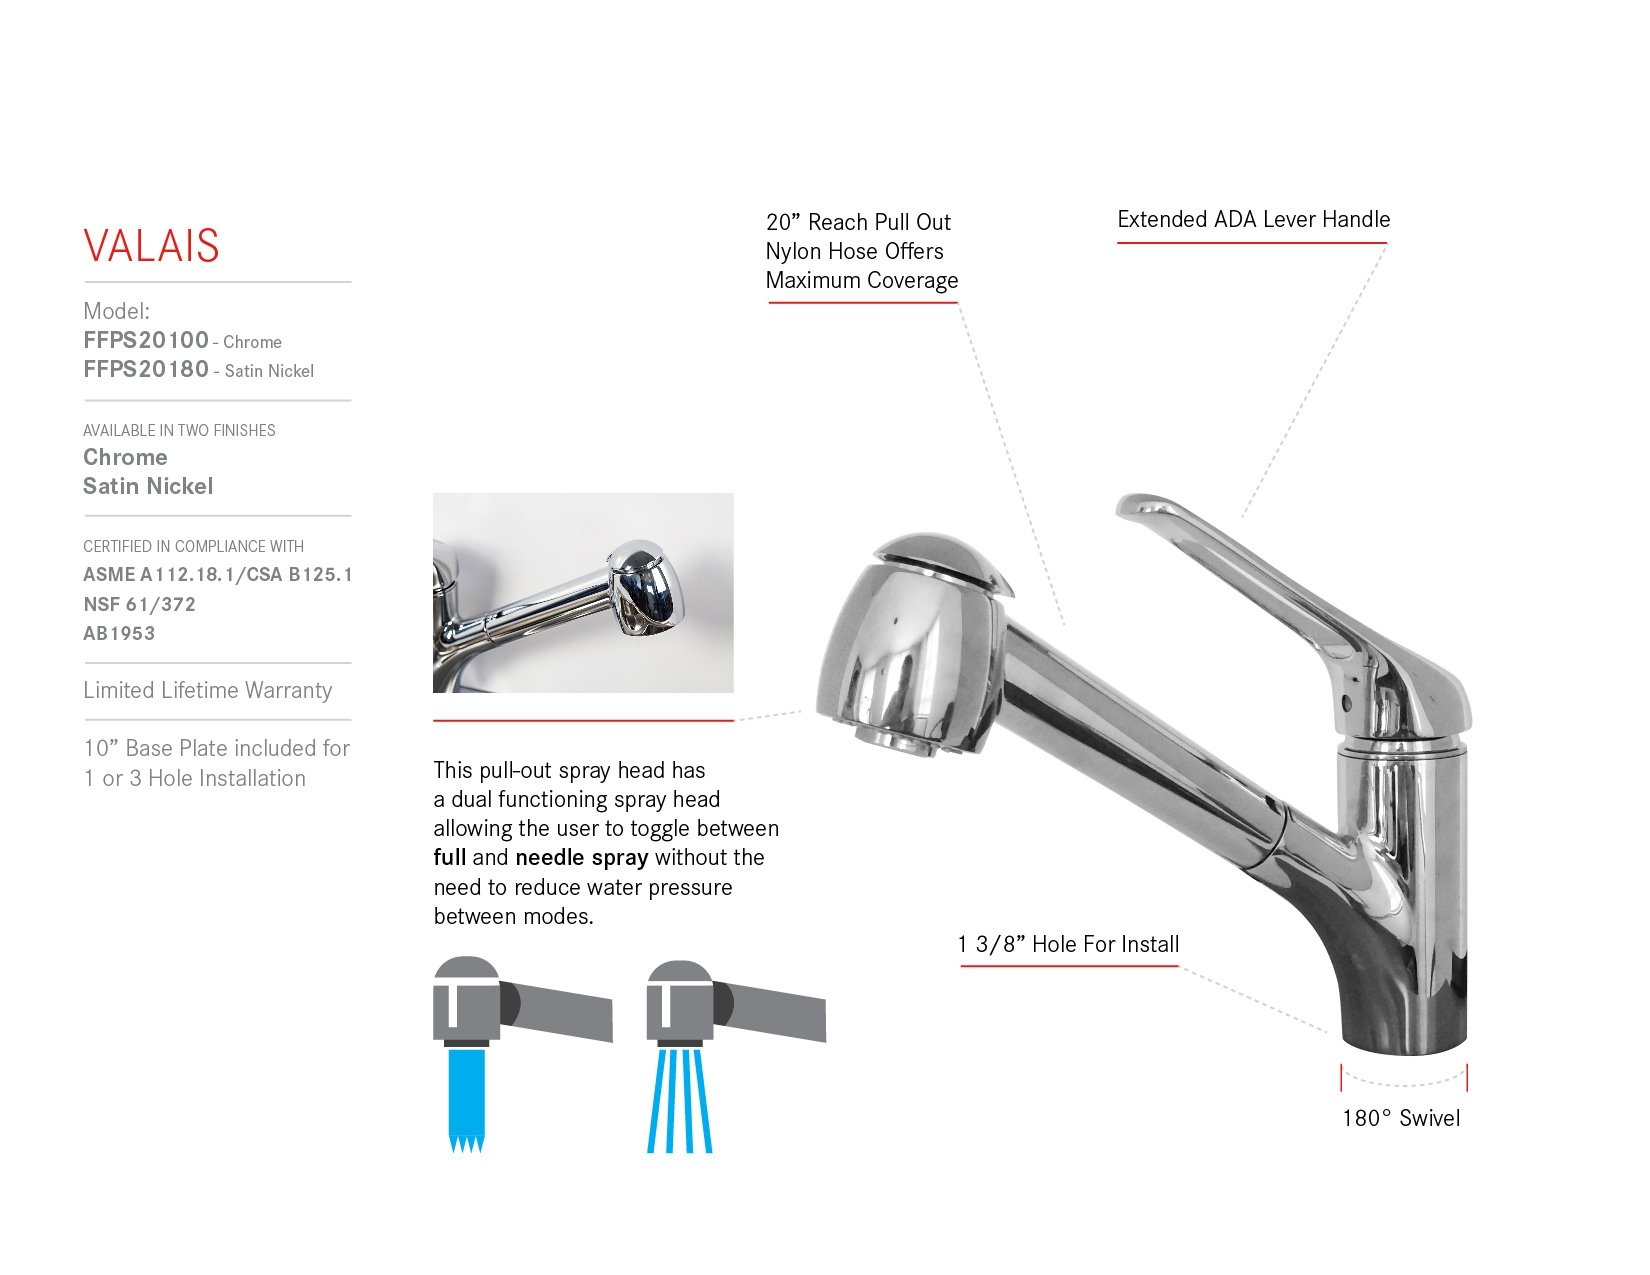 Franke FFPS20100 Valais Single Handle Pull-Out Kitchen Faucet, Chrome